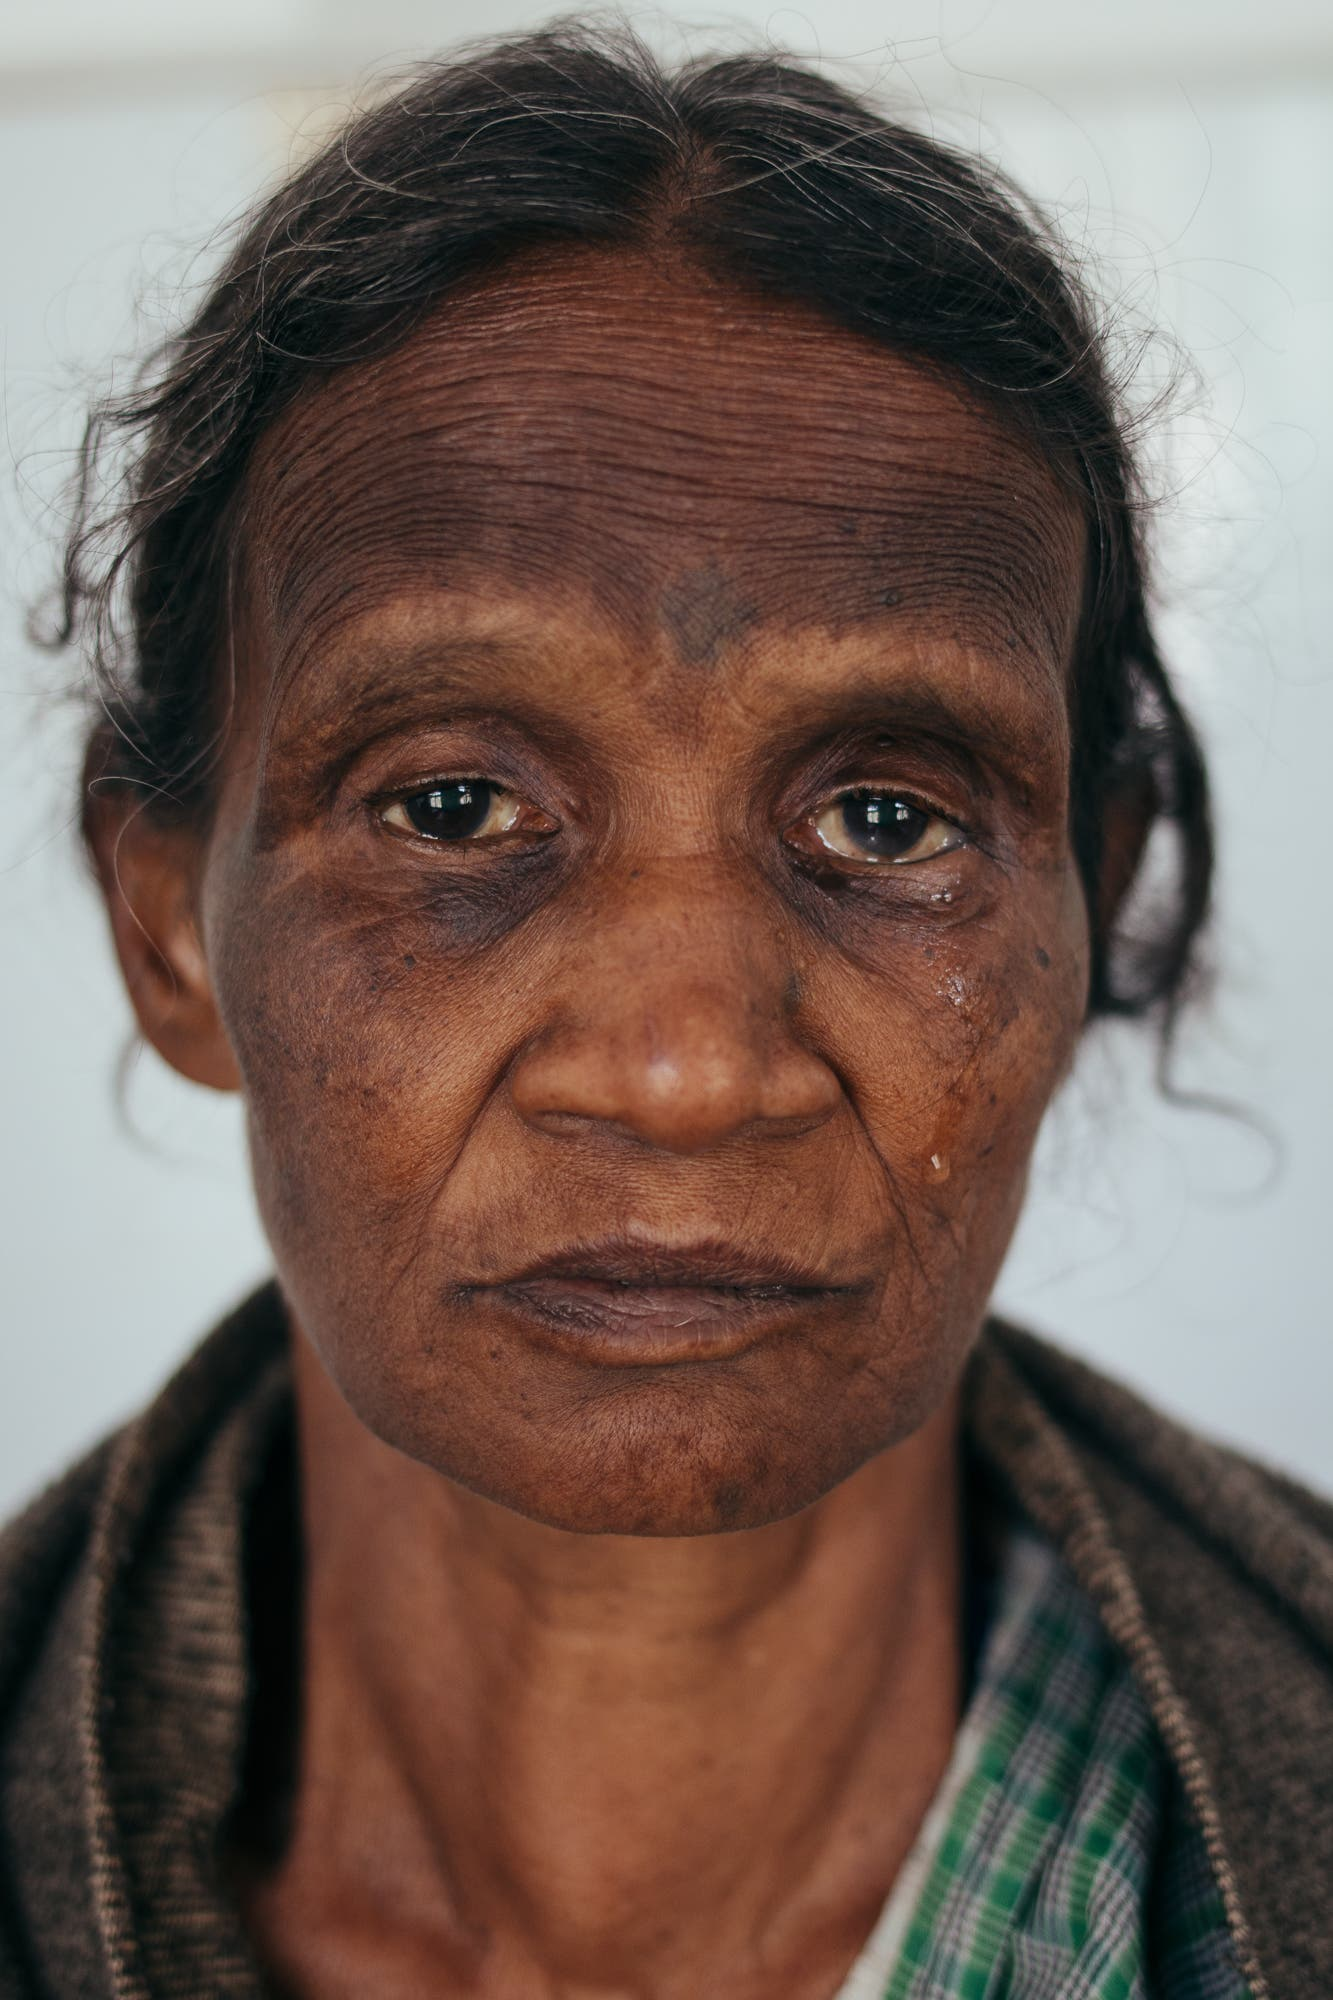 A woman on the leprosy ward at Jesu Ashram Charitable Healthcare Centre for the Destitute and the Poor in Siliguri, West Bengal